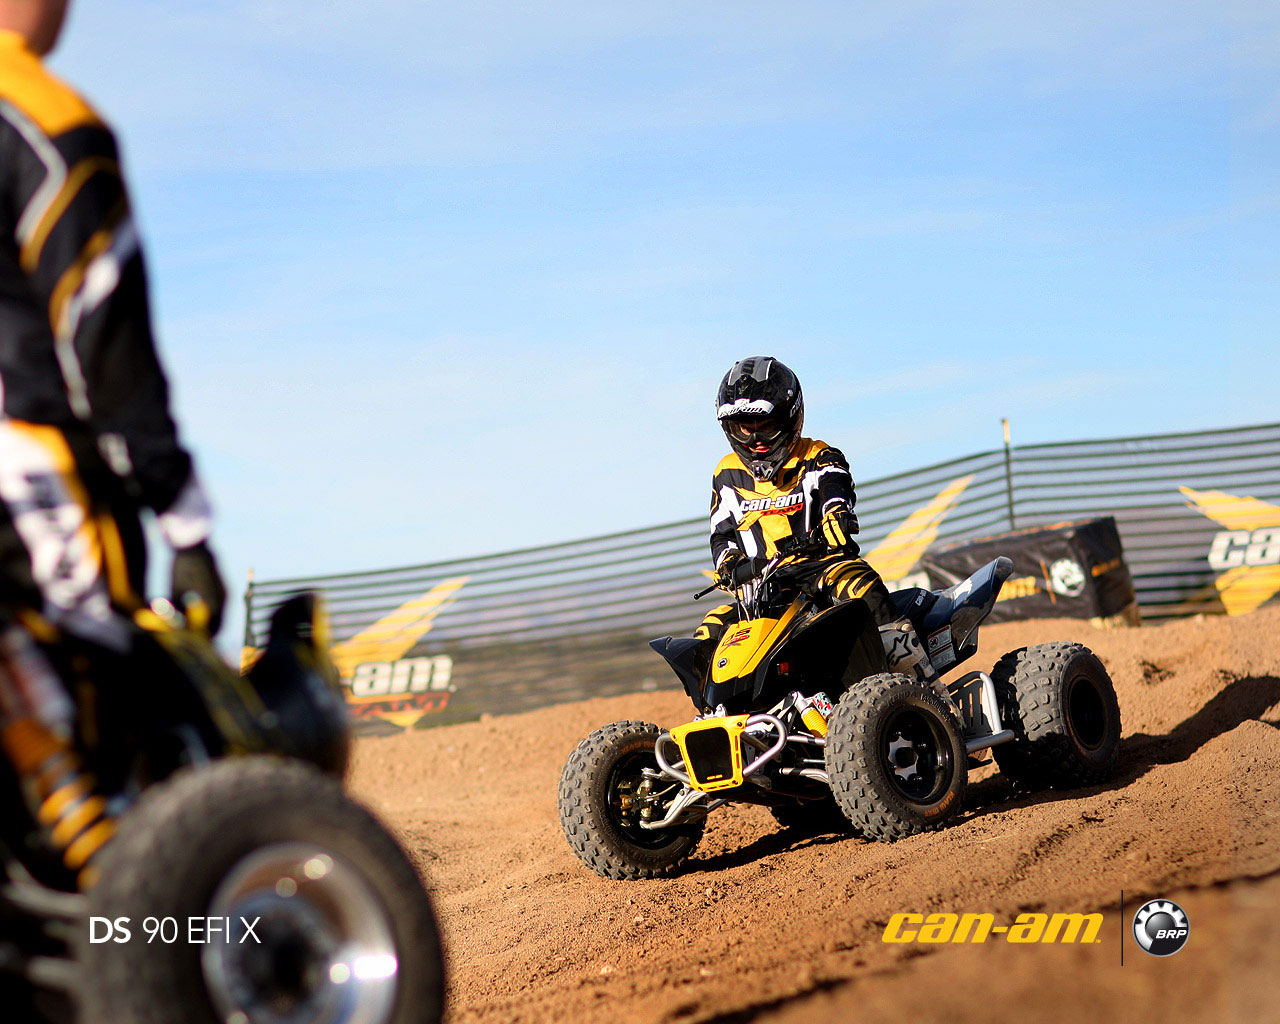 can-am ds 90 #5